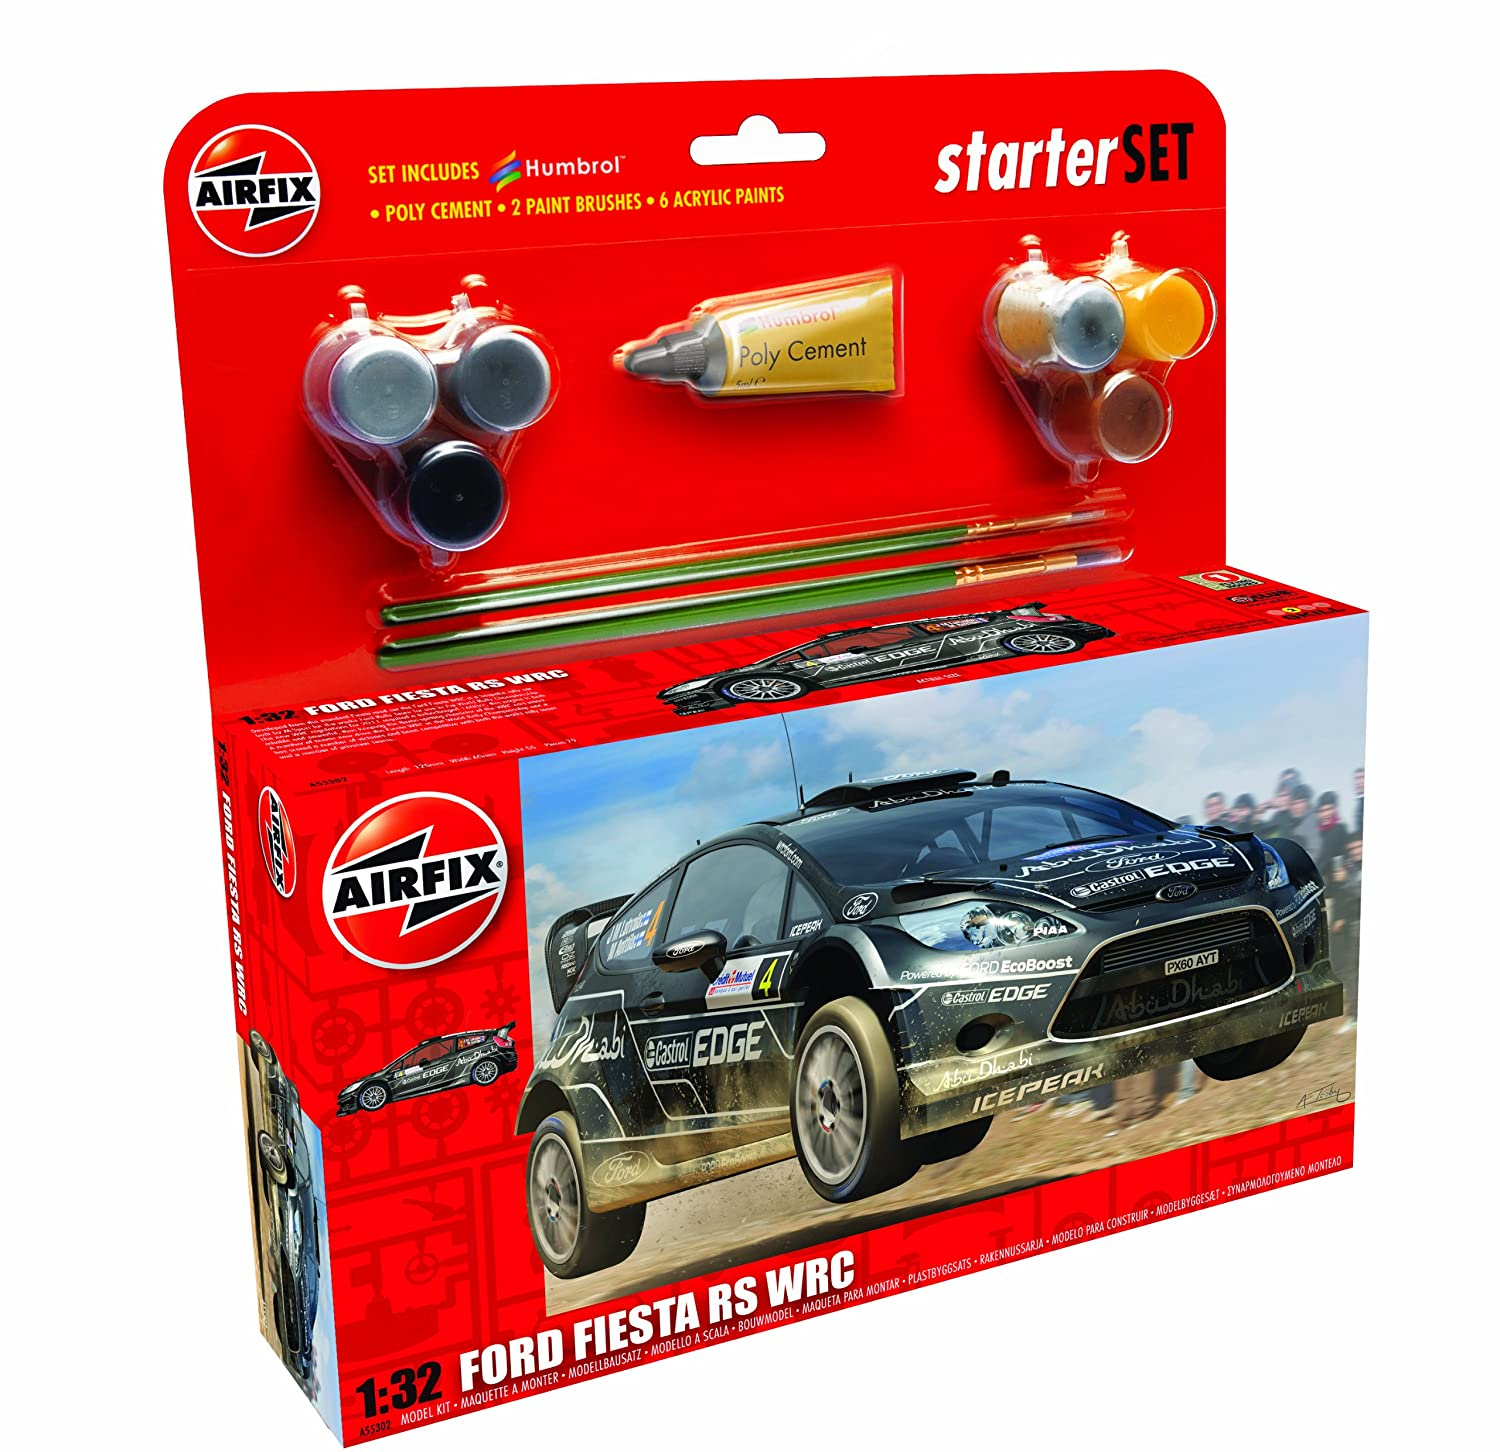 Ford Fiesta WRC amazon